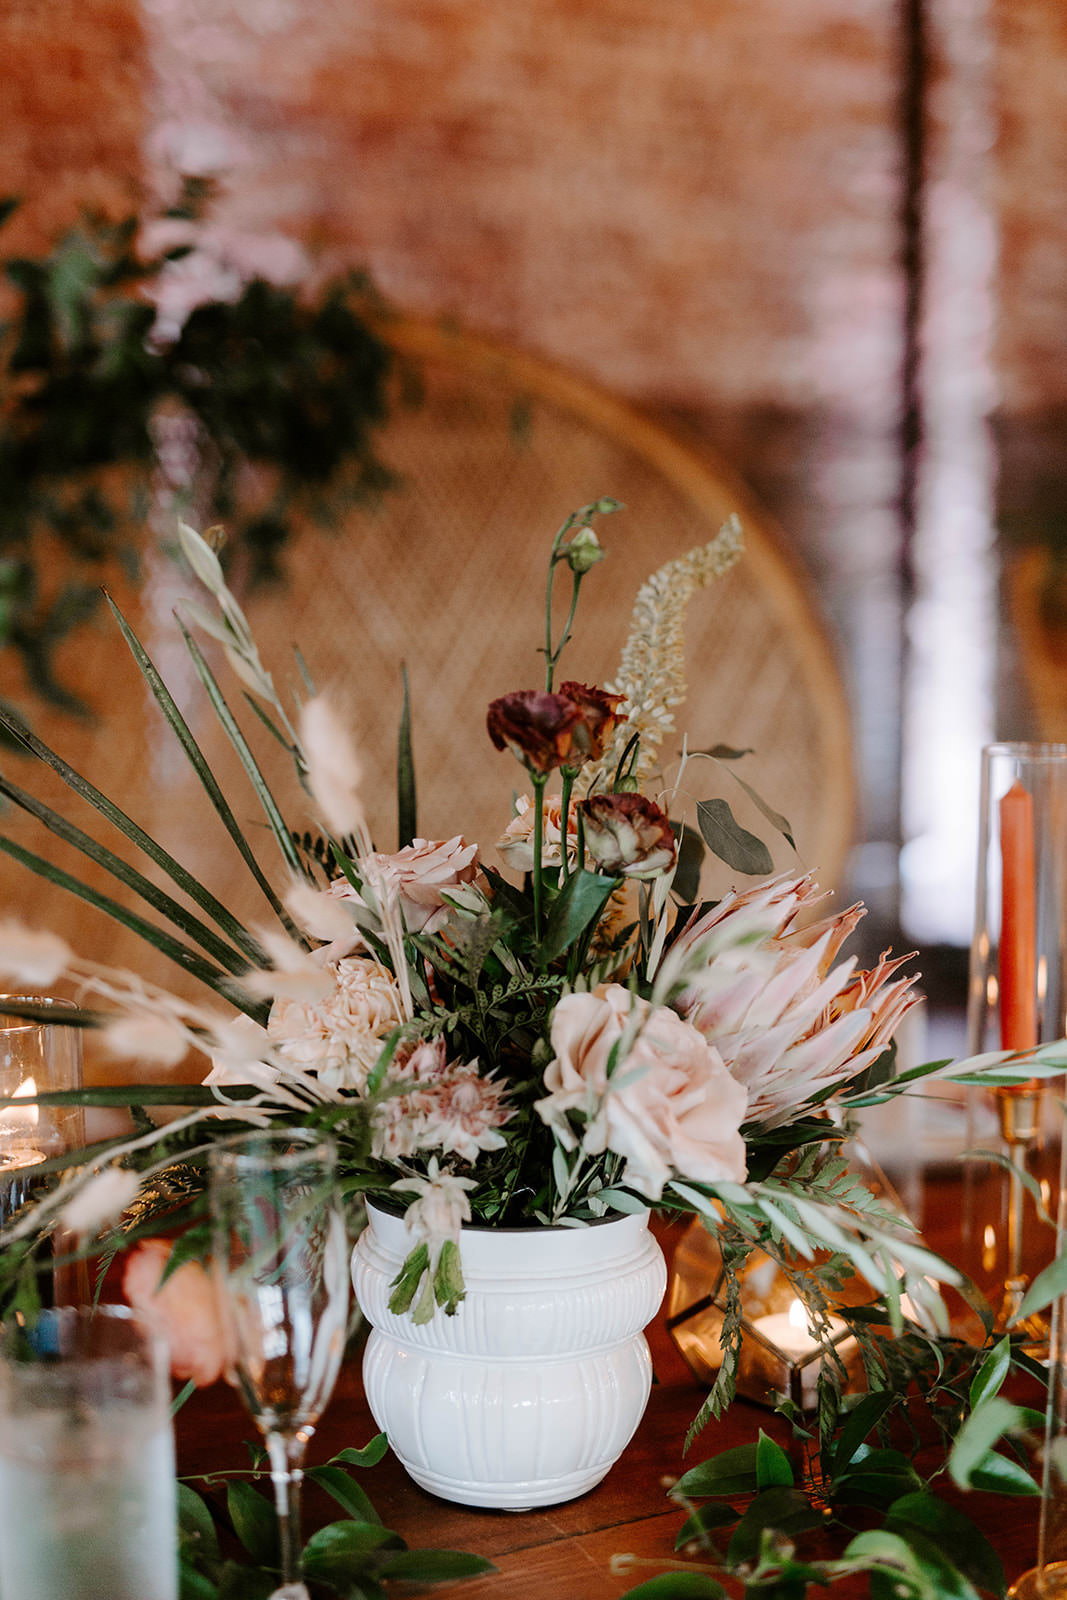 Boho Whimsical Wedding Reception Decor, Small White Vase with Palm Fronds, Blush Pink Roses, King Protea Floral Centerpiece   Tampa Bay Wedding Planner Coastal Coordinating